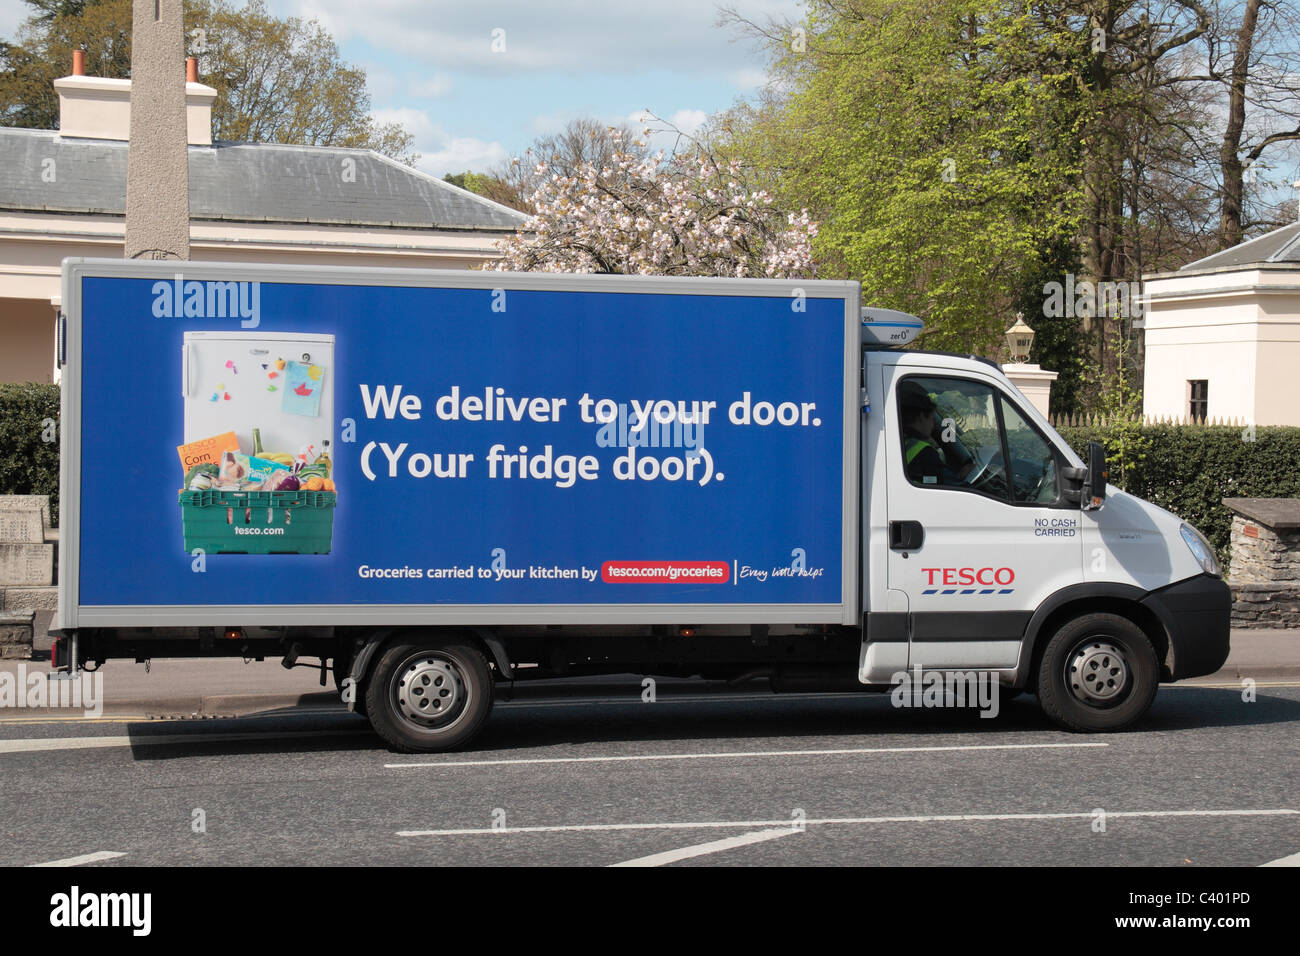 Food Delivery Camberley